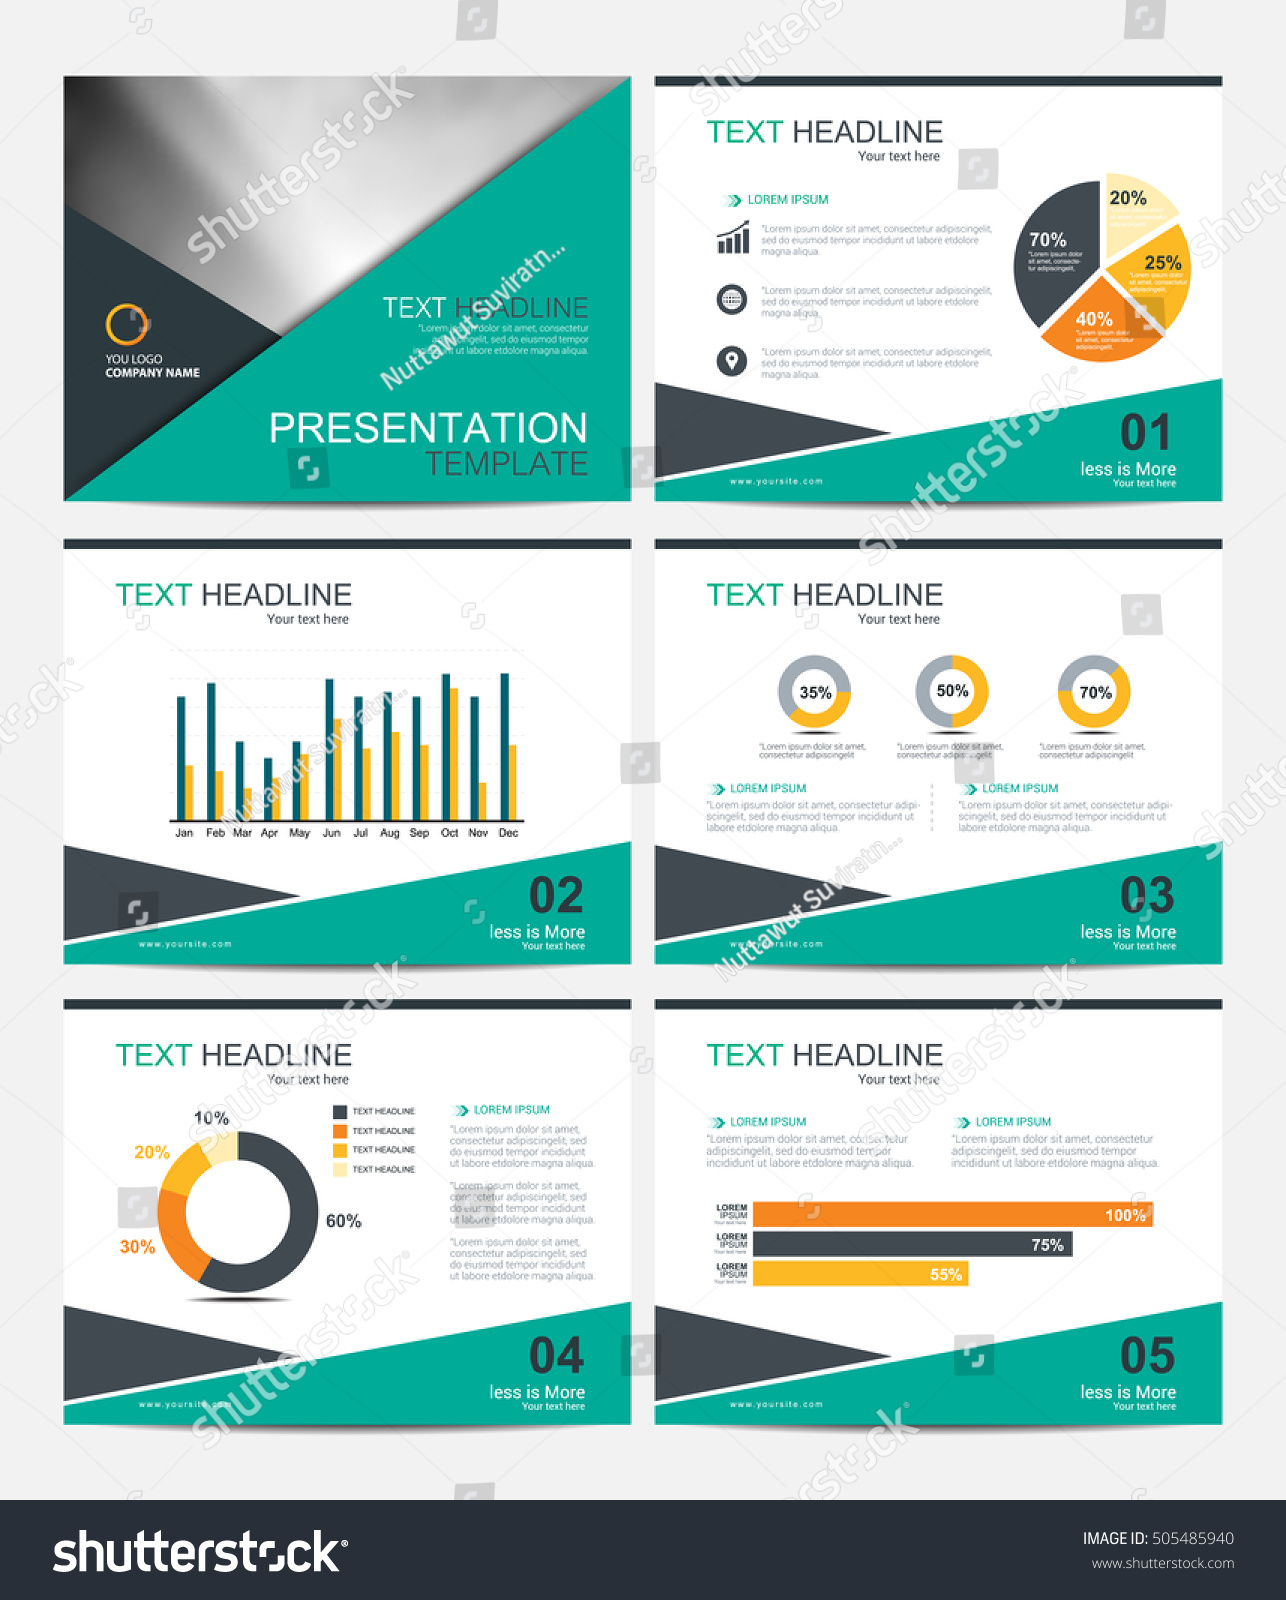 15 Ways to Create Effective PowerPoint Presentations